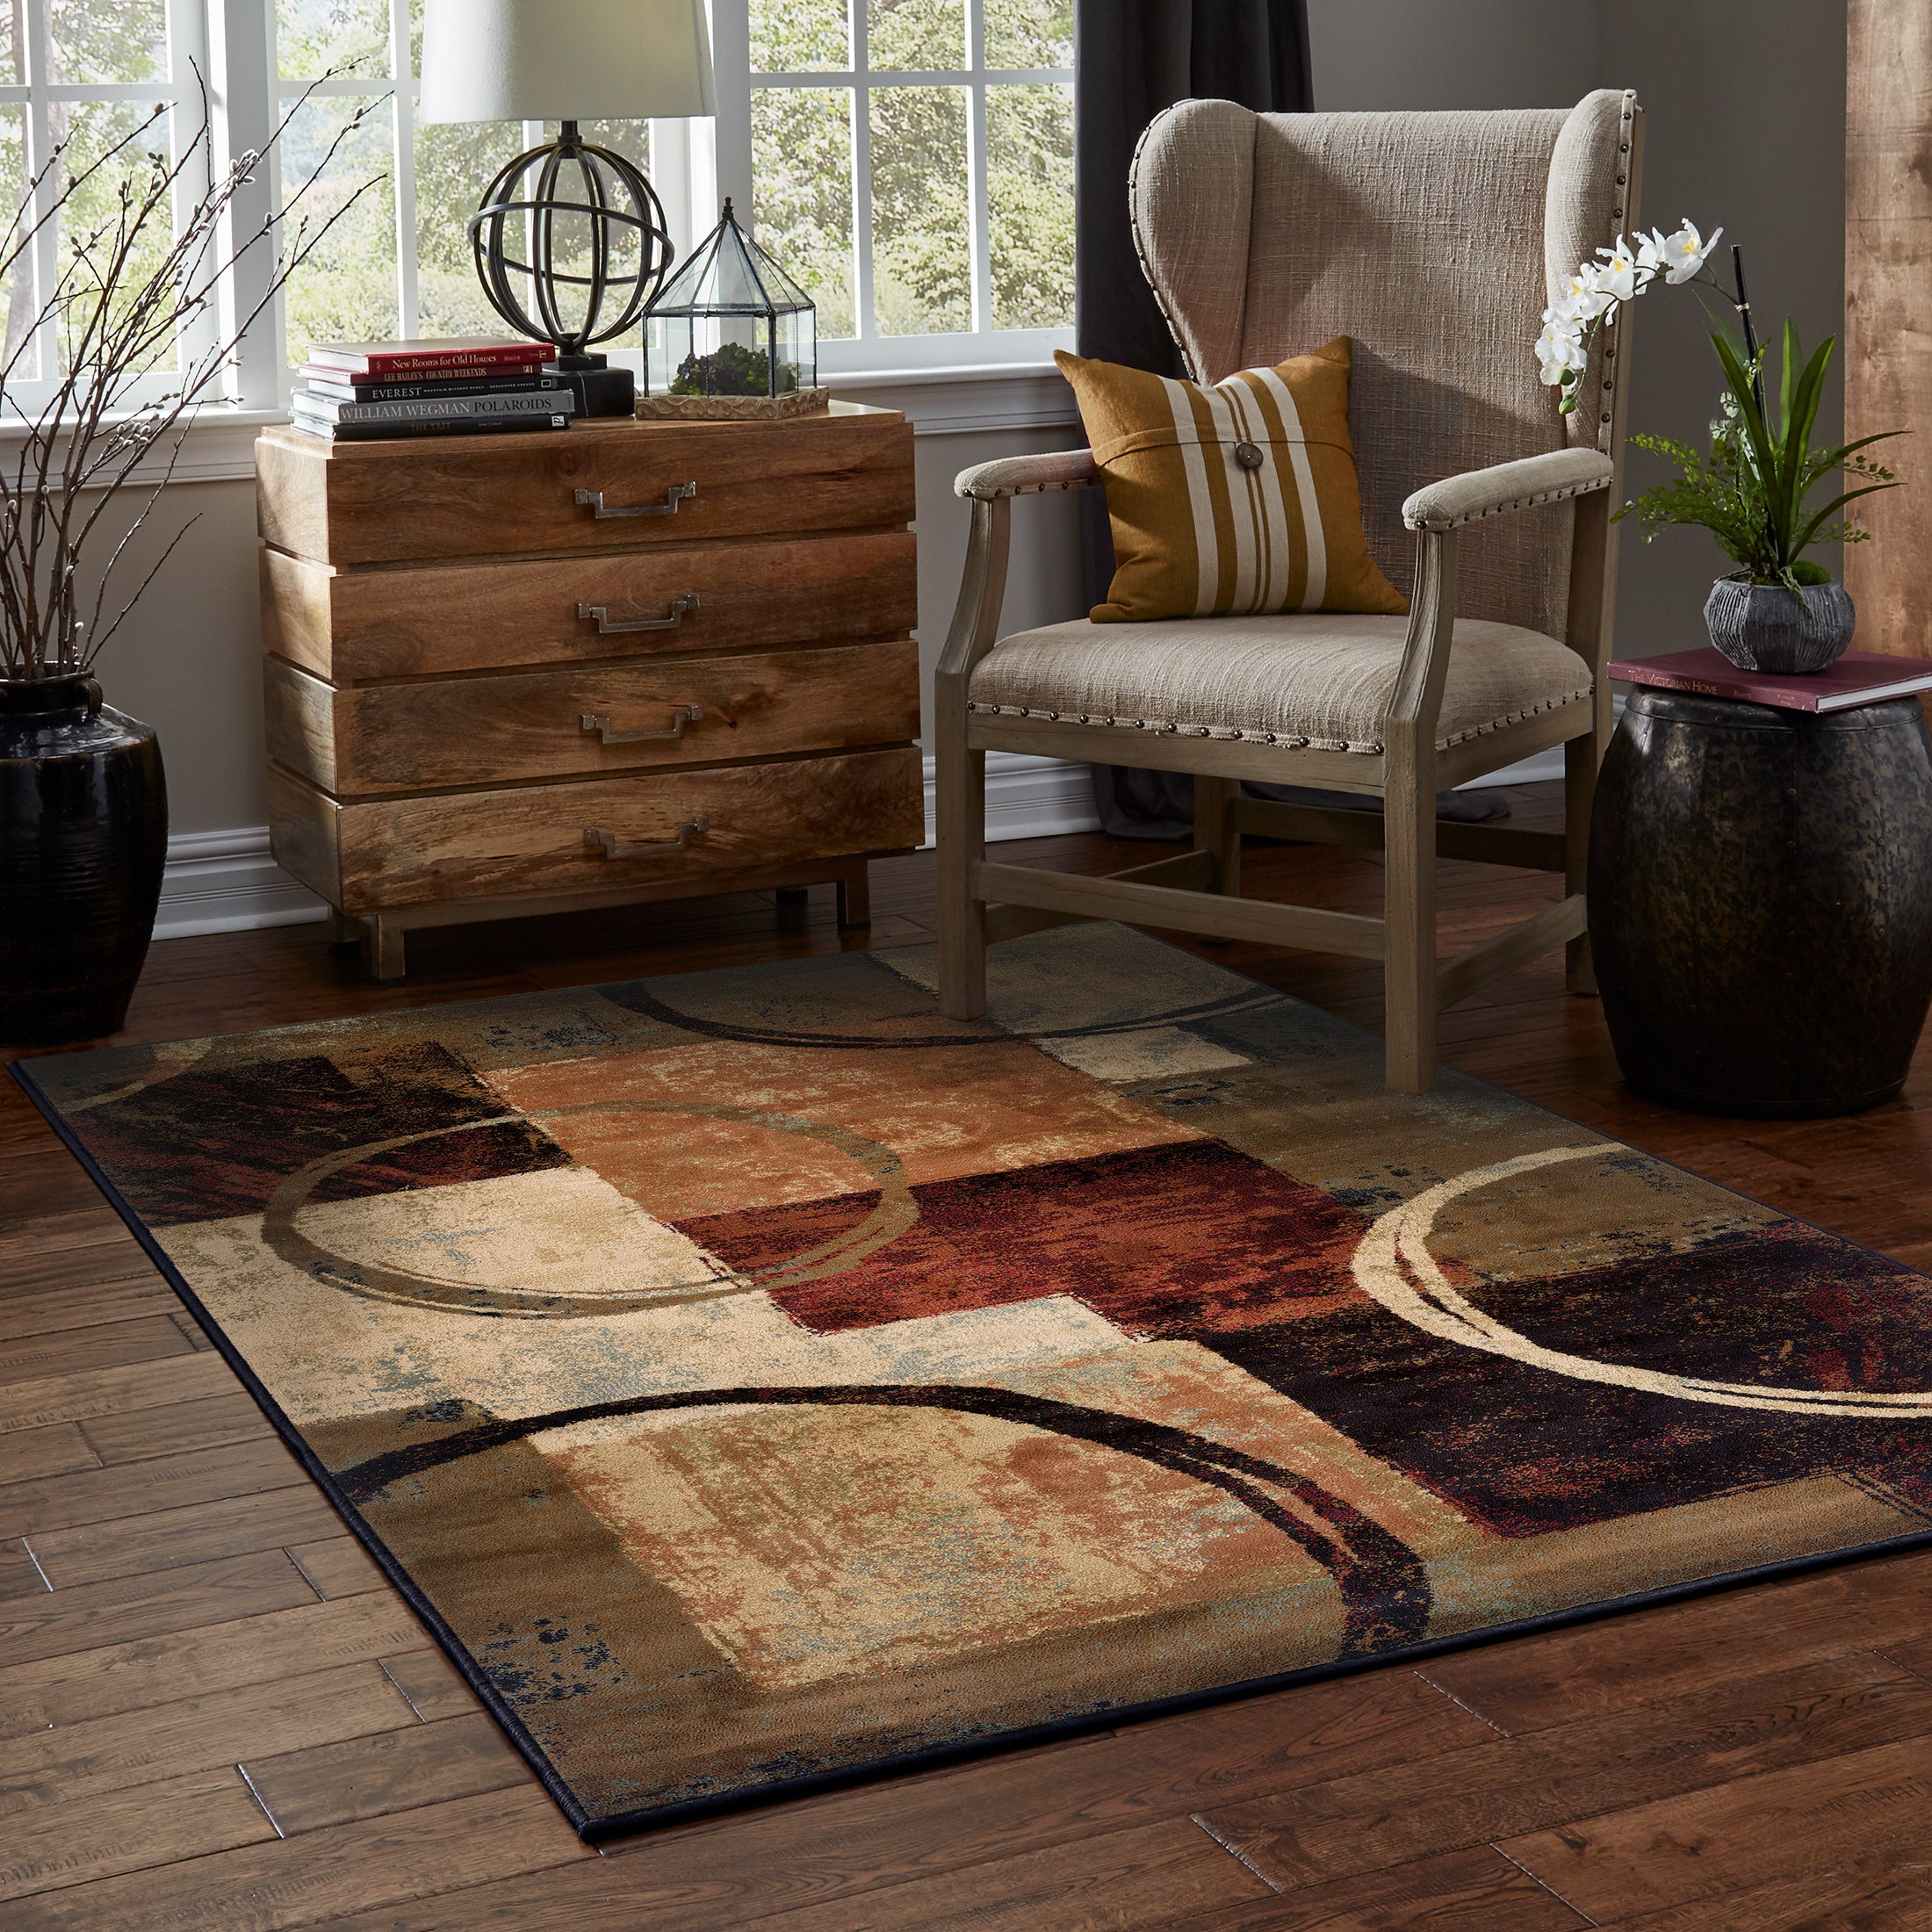 Shop Copper Grove Wakaw Blocks And Rings Brown Black Area Rug On